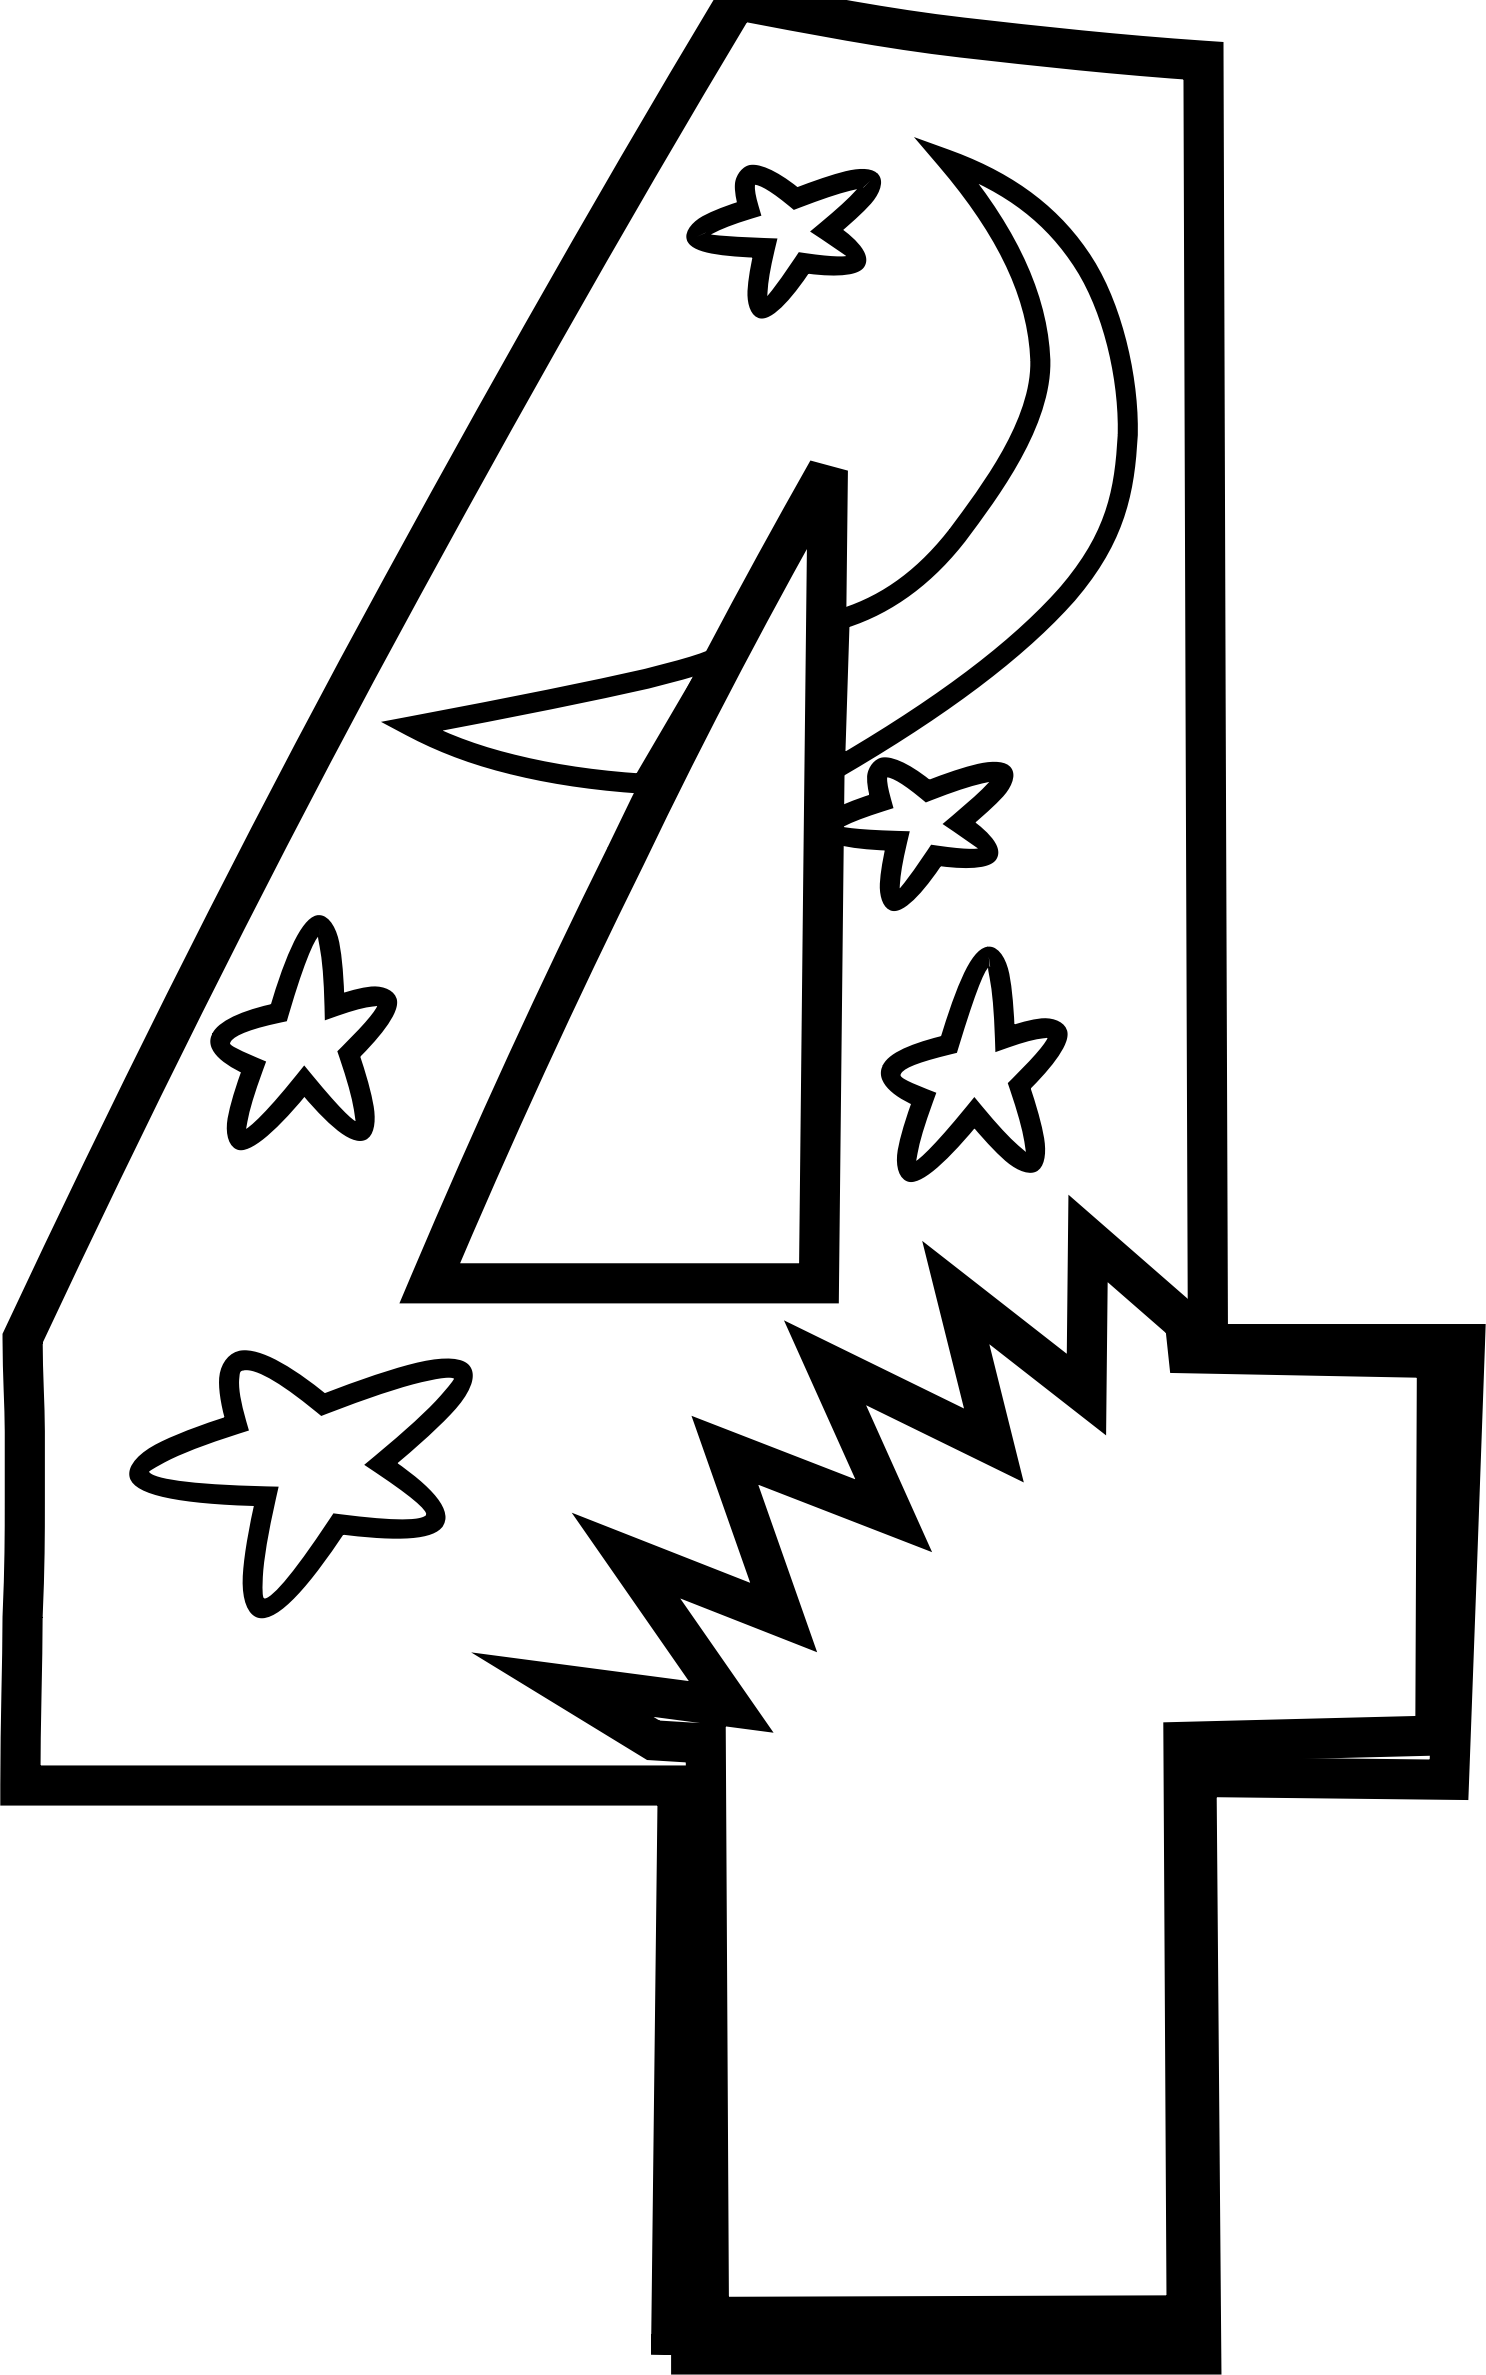 number 4 coloring sheets clipart black and white - Clipground